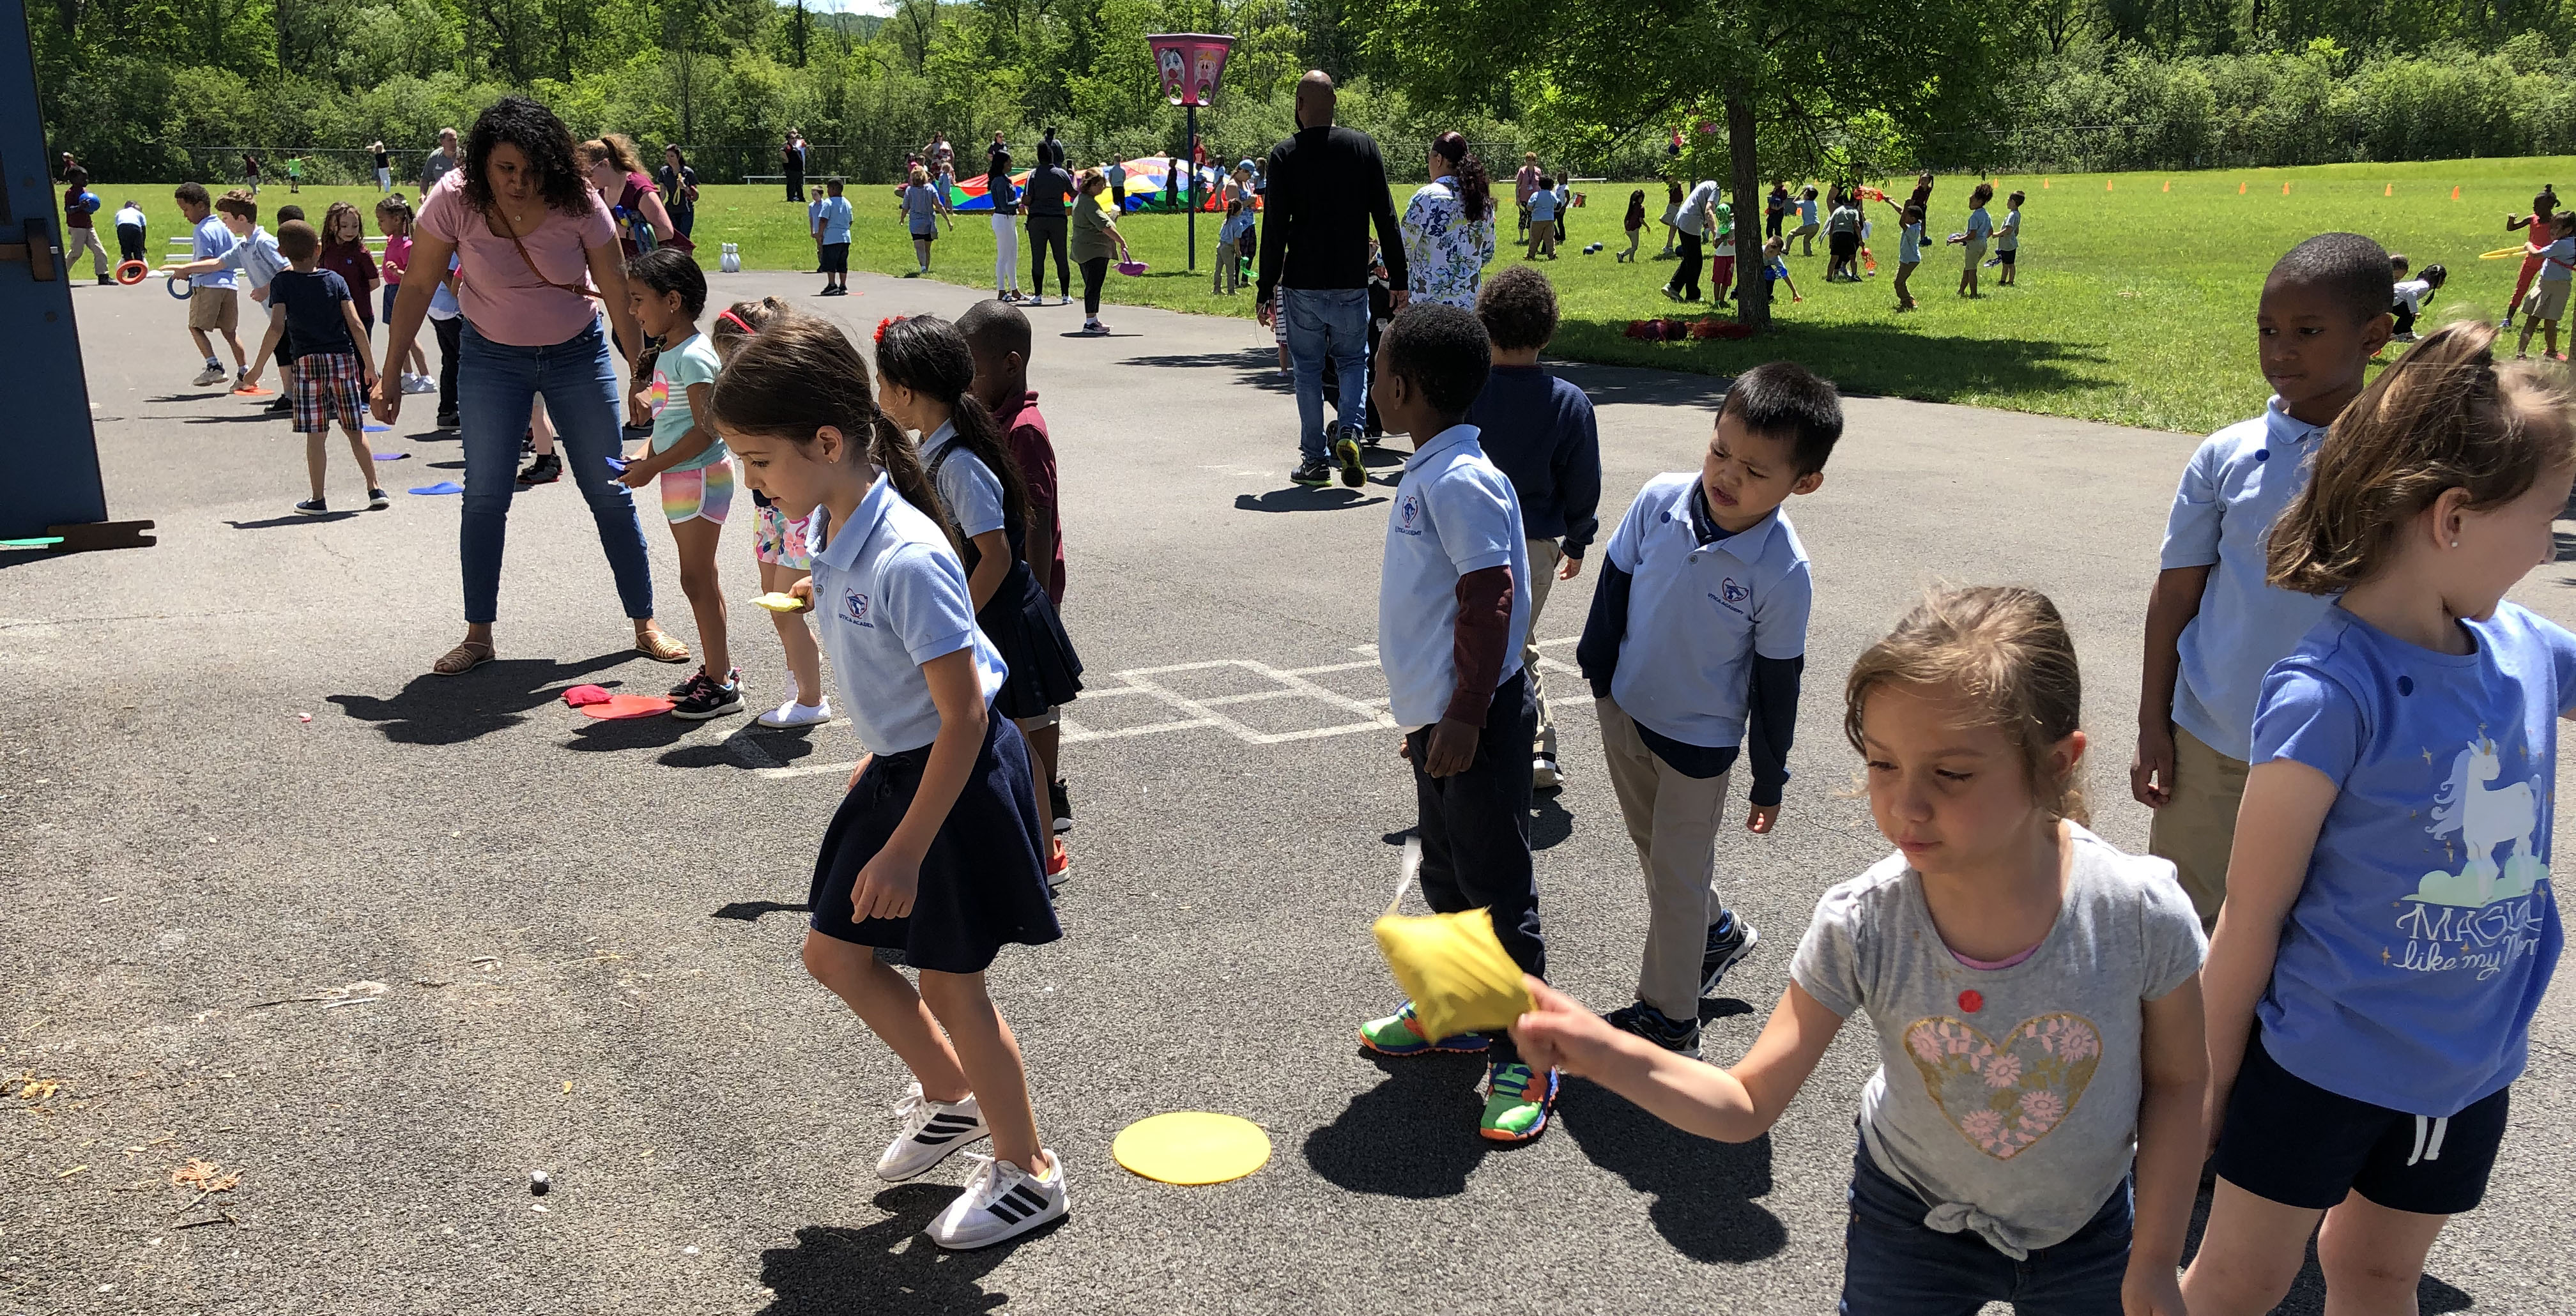 Elementary Atoms hosted their first annual Field Day event